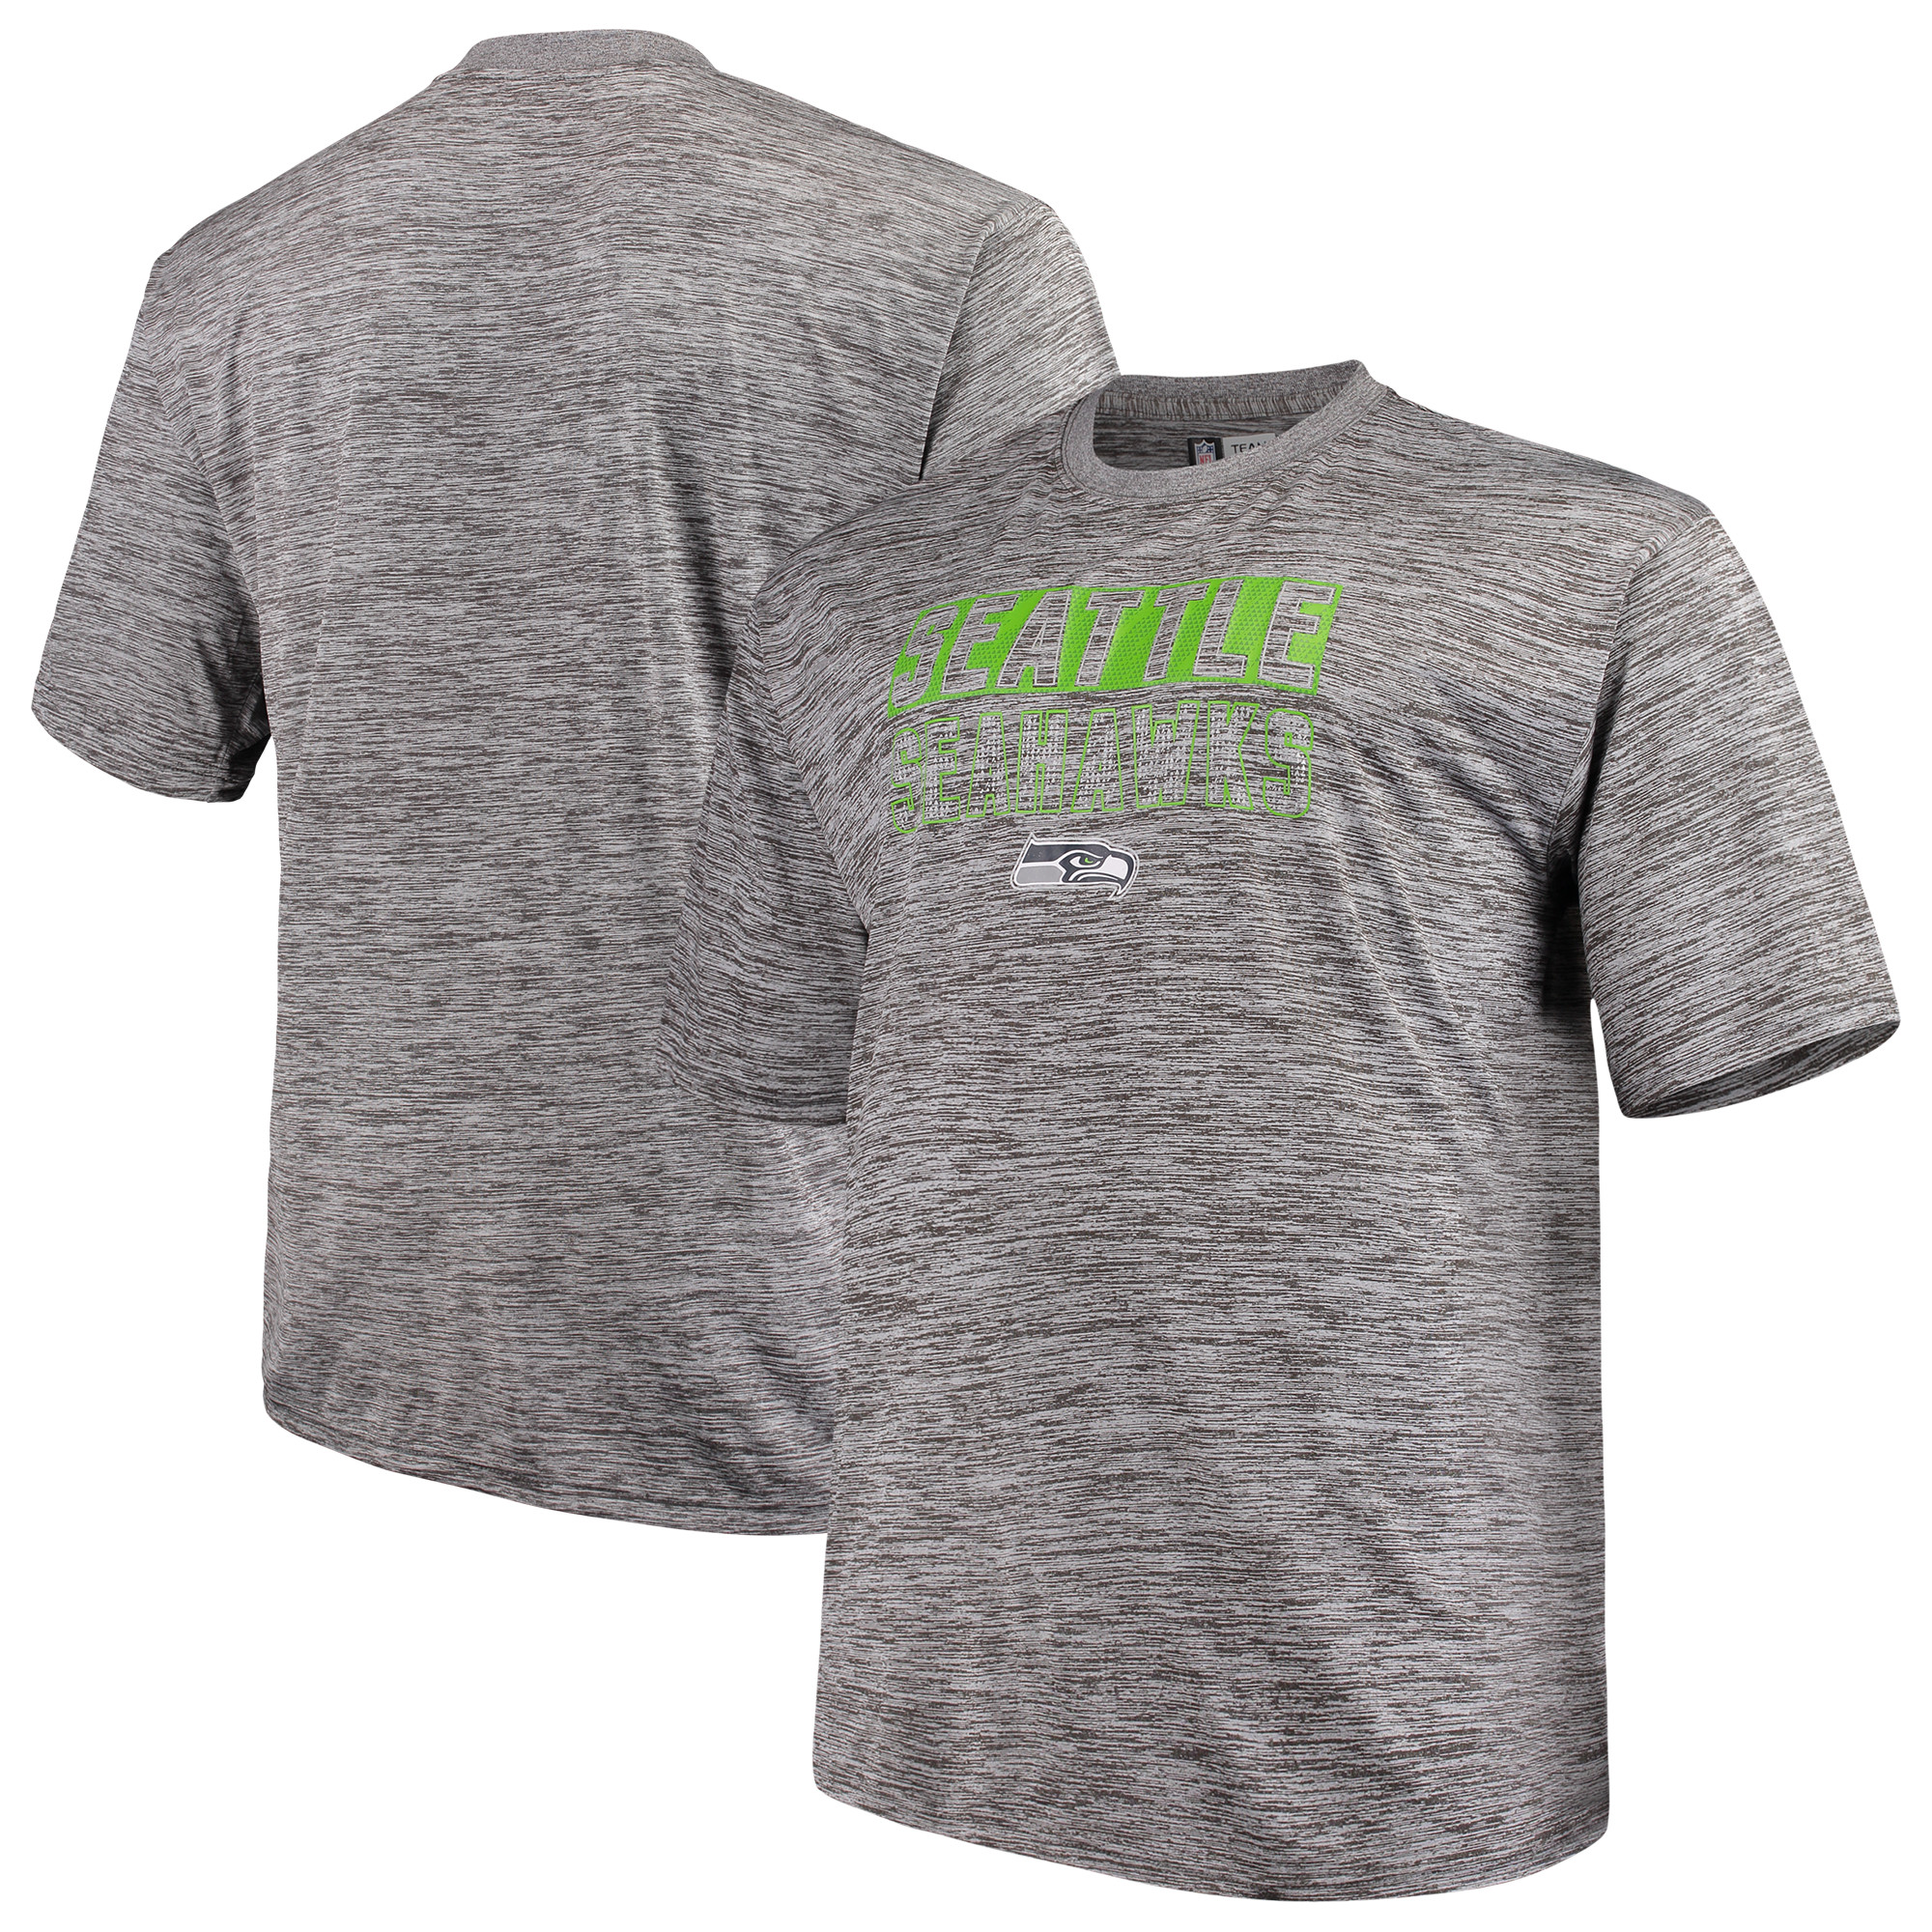 Men's Majestic Heathered Gray Seattle Seahawks Big & Tall Last Chance Ply Reflective T-Shirt